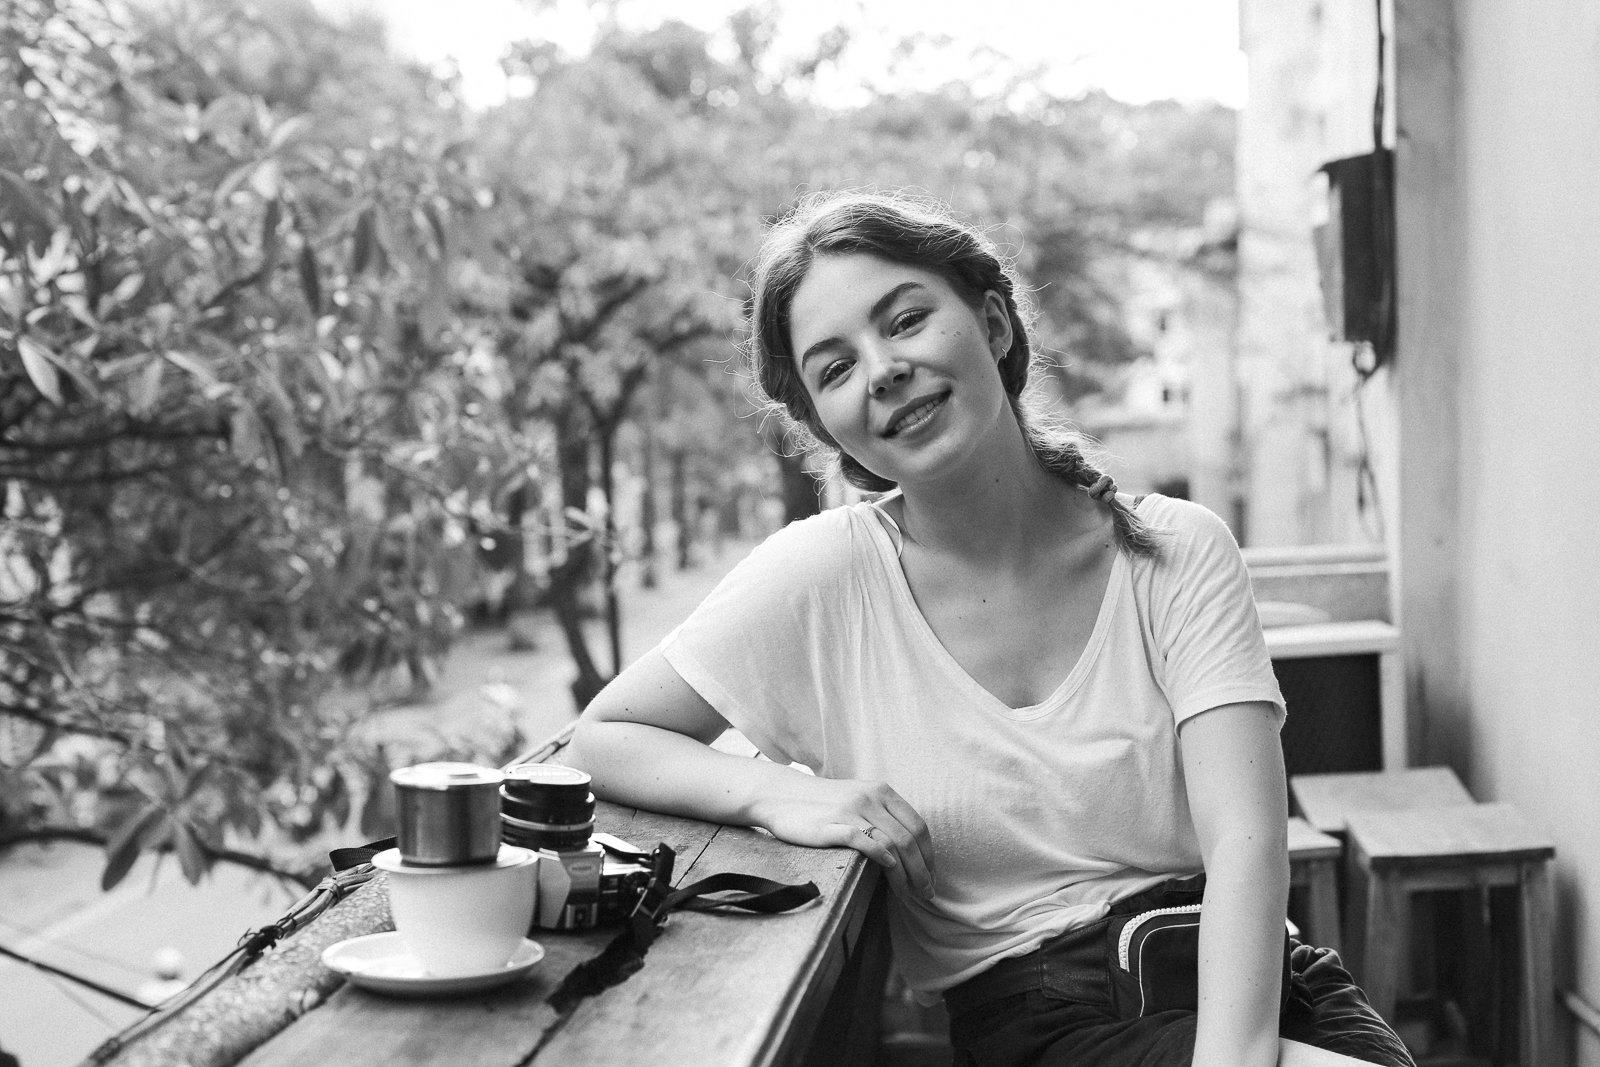 Hanoi_13_b, Hanoi, Vietnam, Photo and Travel Diary by The Curly Head, Photography by Amelie Niederbuchner,